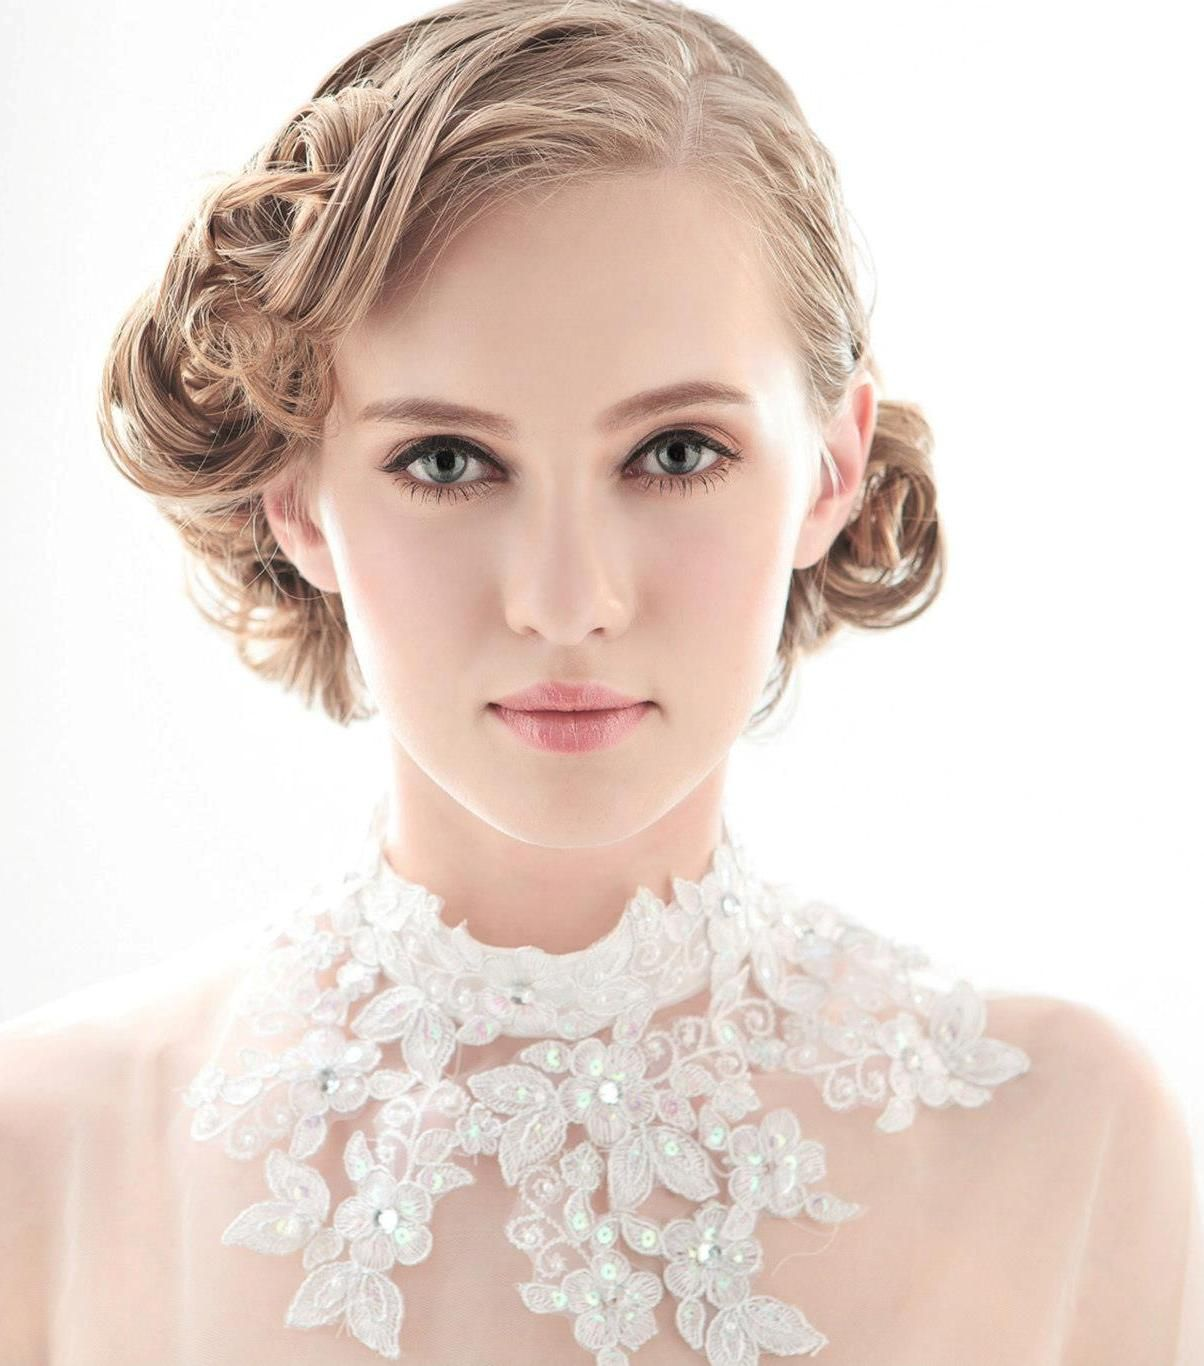 Bridal hairstyles for short hair simple hairstyle ideas for women